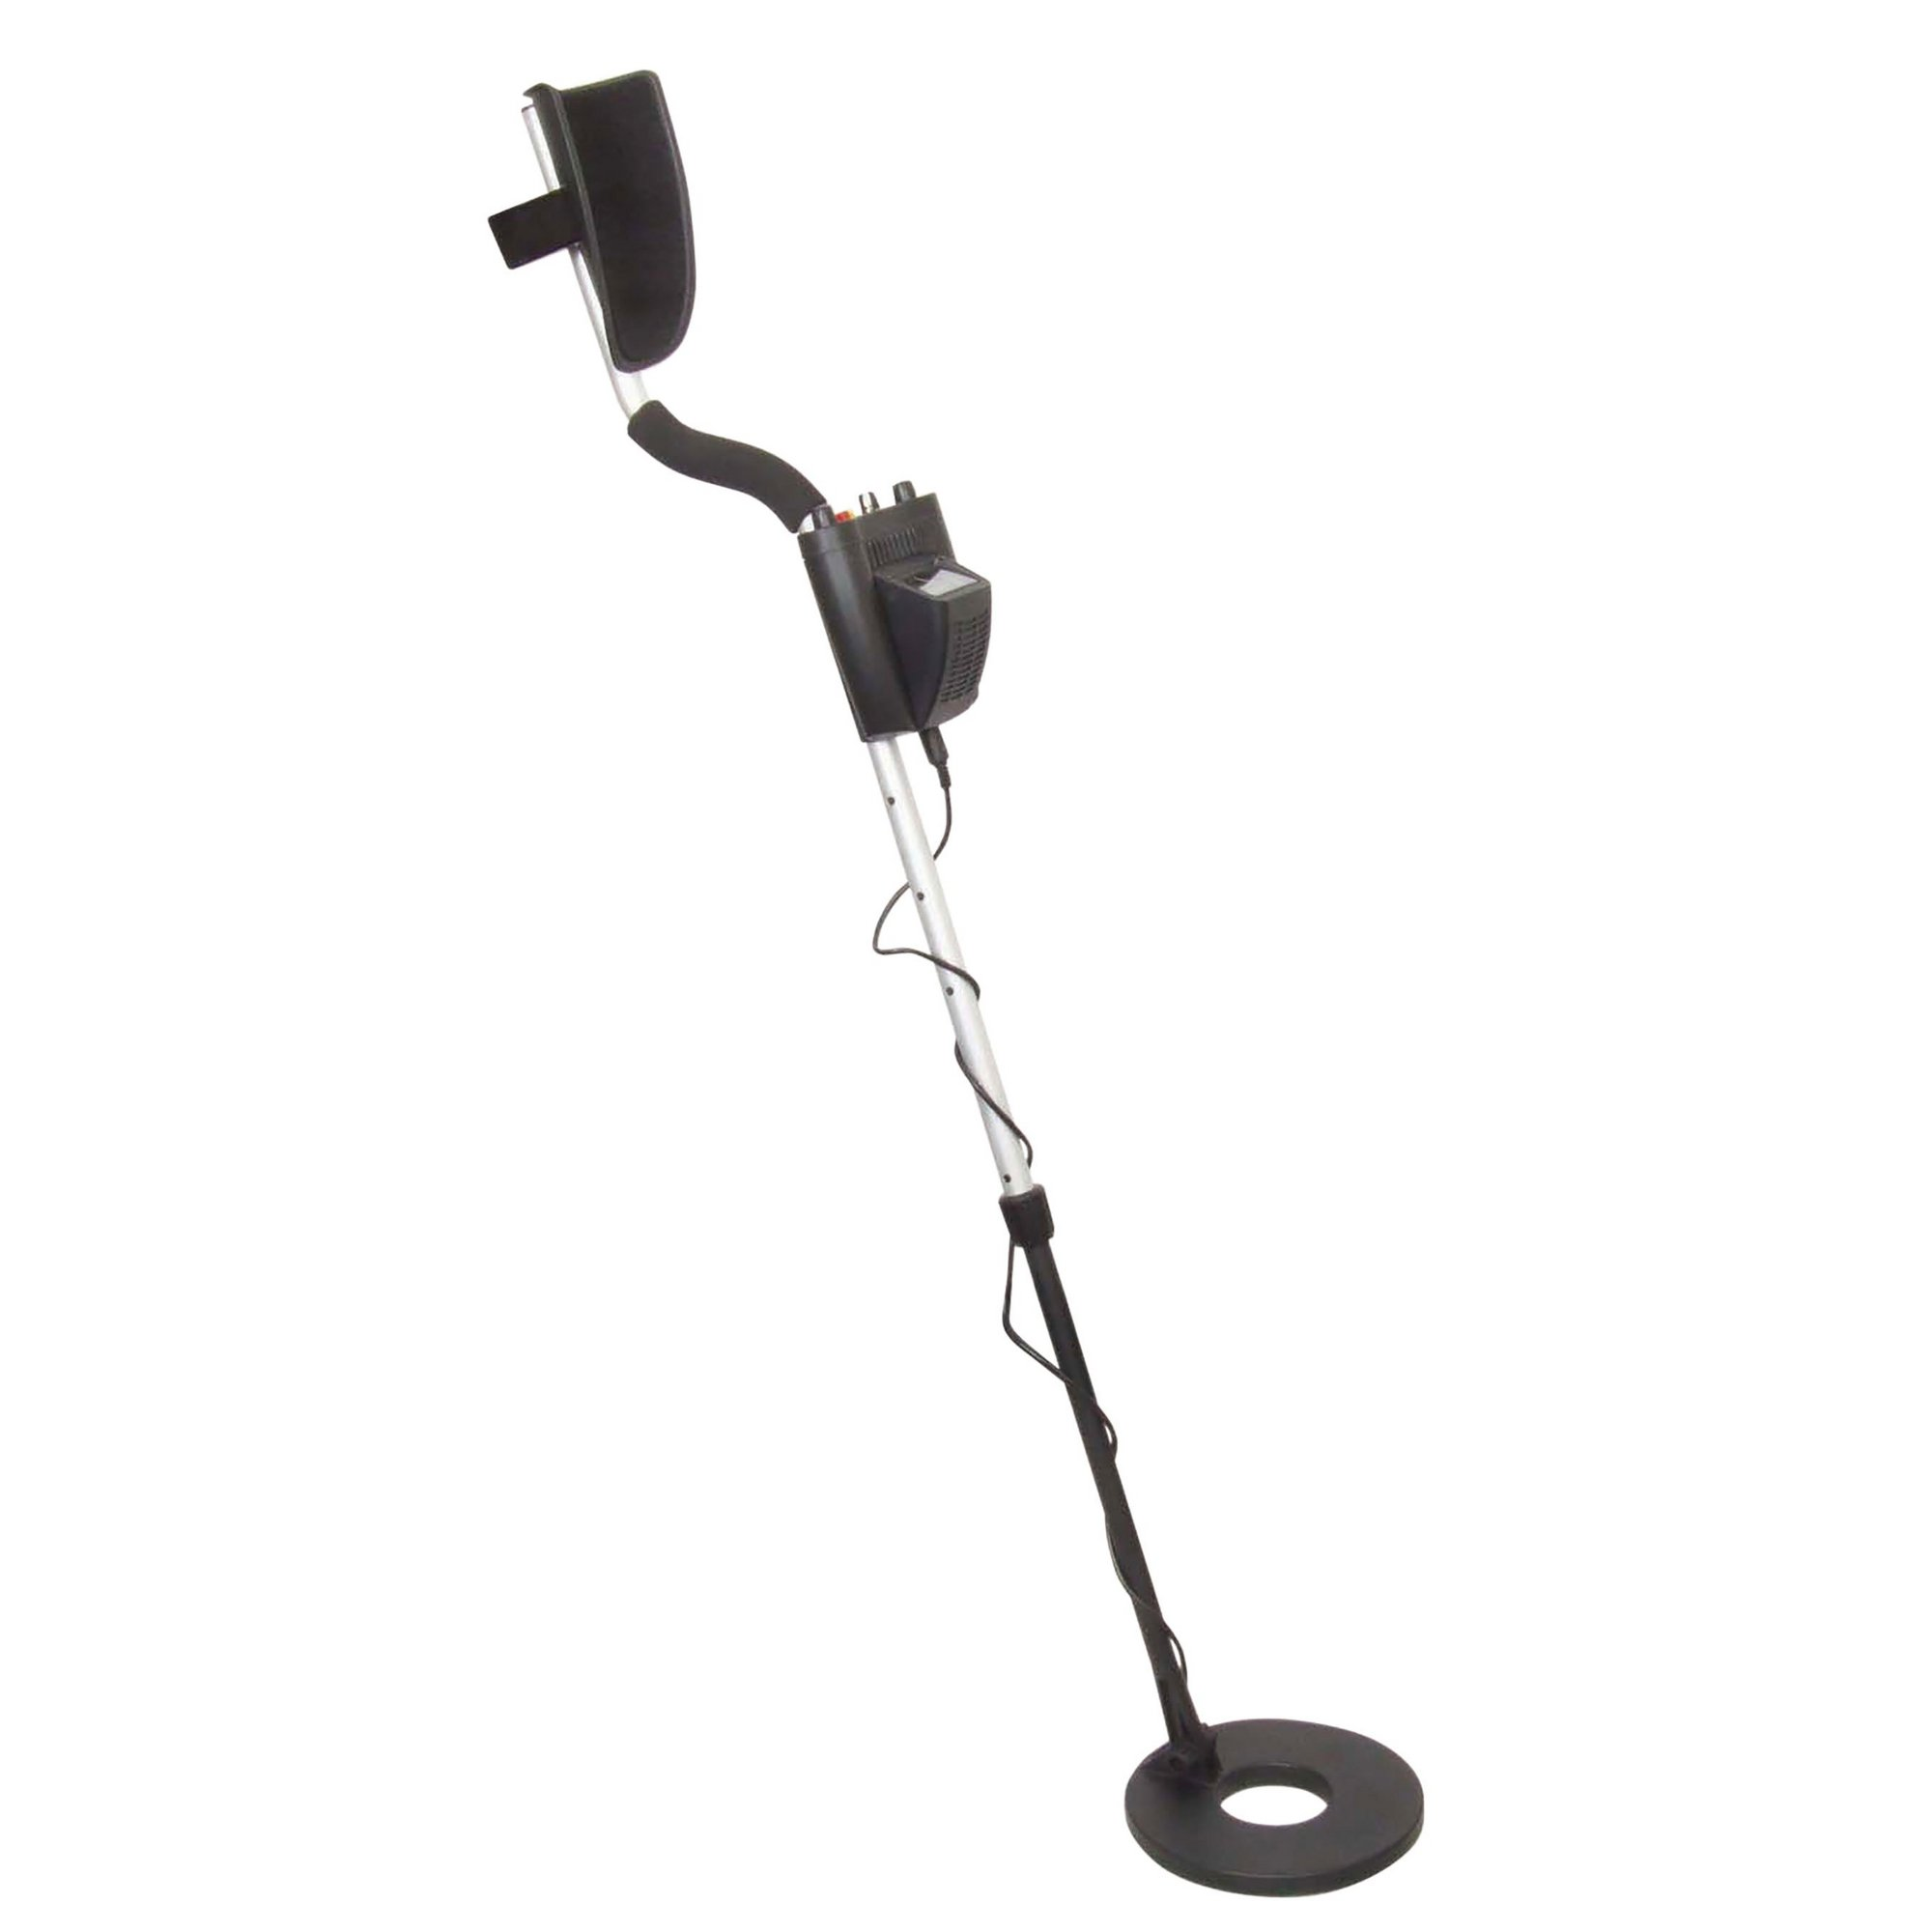 Image of Altai Treasure Seeker 6 Professional Waterproof Metal Detector